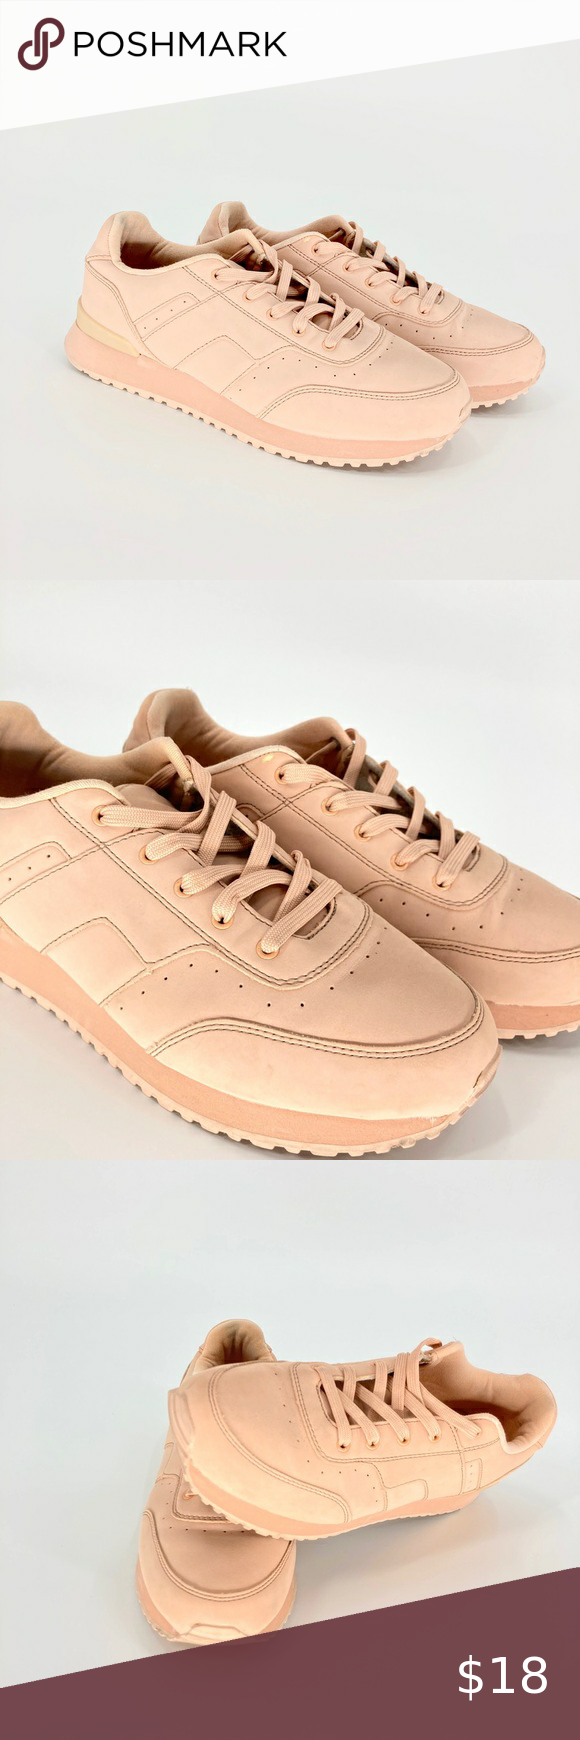 Pull Bear Pink Trainers Sneakers Pull Bear Pink Trainers Sneakers Pull Bear Peach Pink Vintage Trainers Womens Shoes Sneakers Trainer Sneakers Sneakers